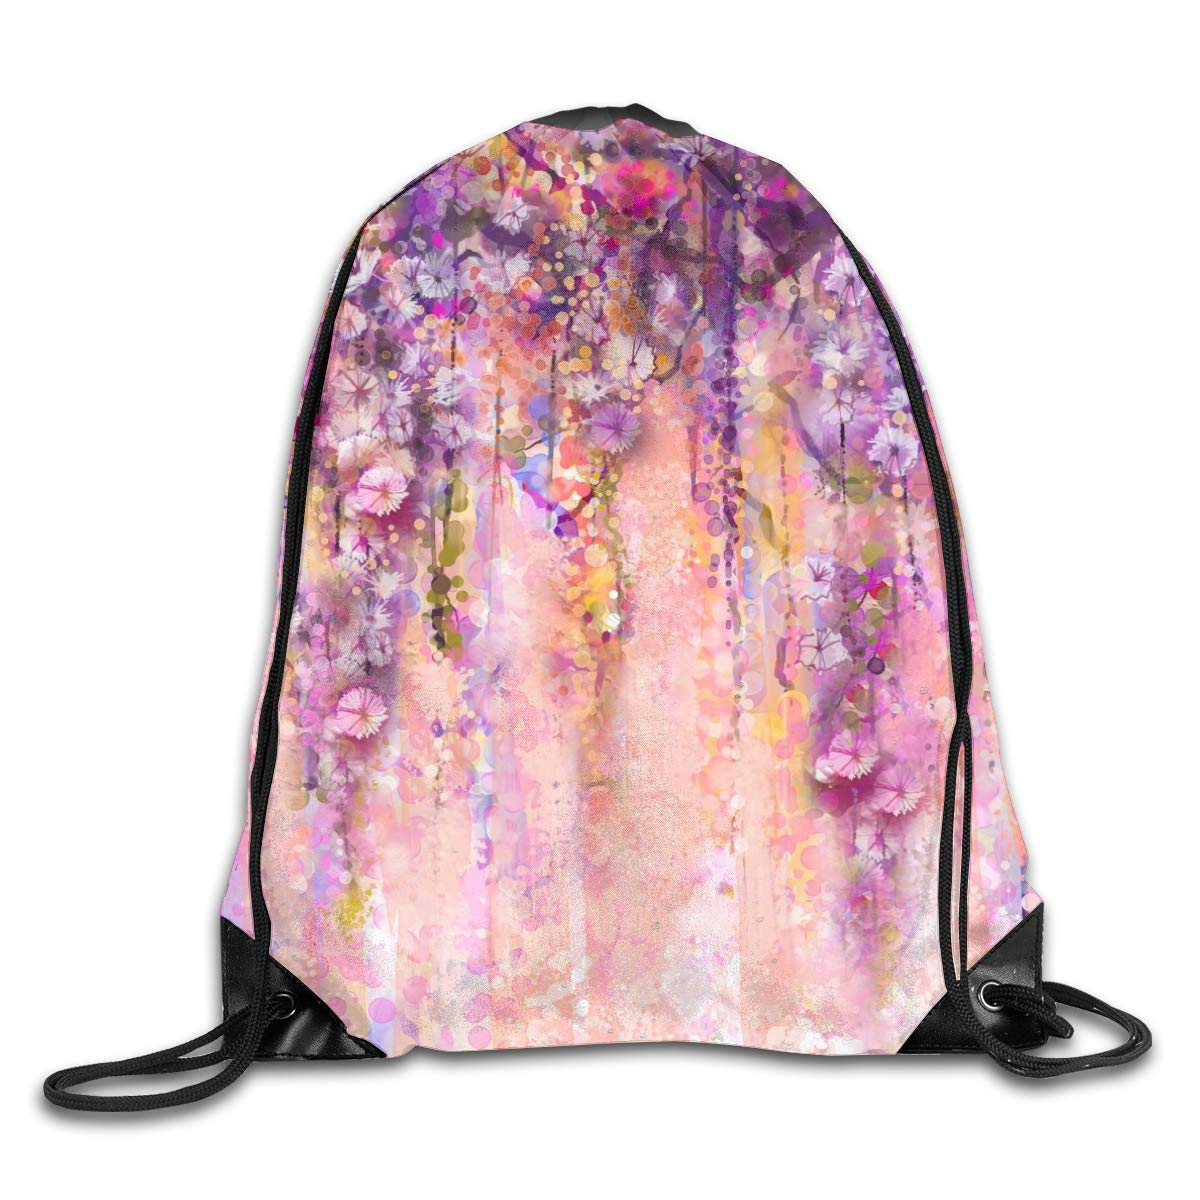 Abstract Flower Wisteria Beam Mouth Backpack Pull Rope Shoulder Bag Outdoor Sports Leisure Bag